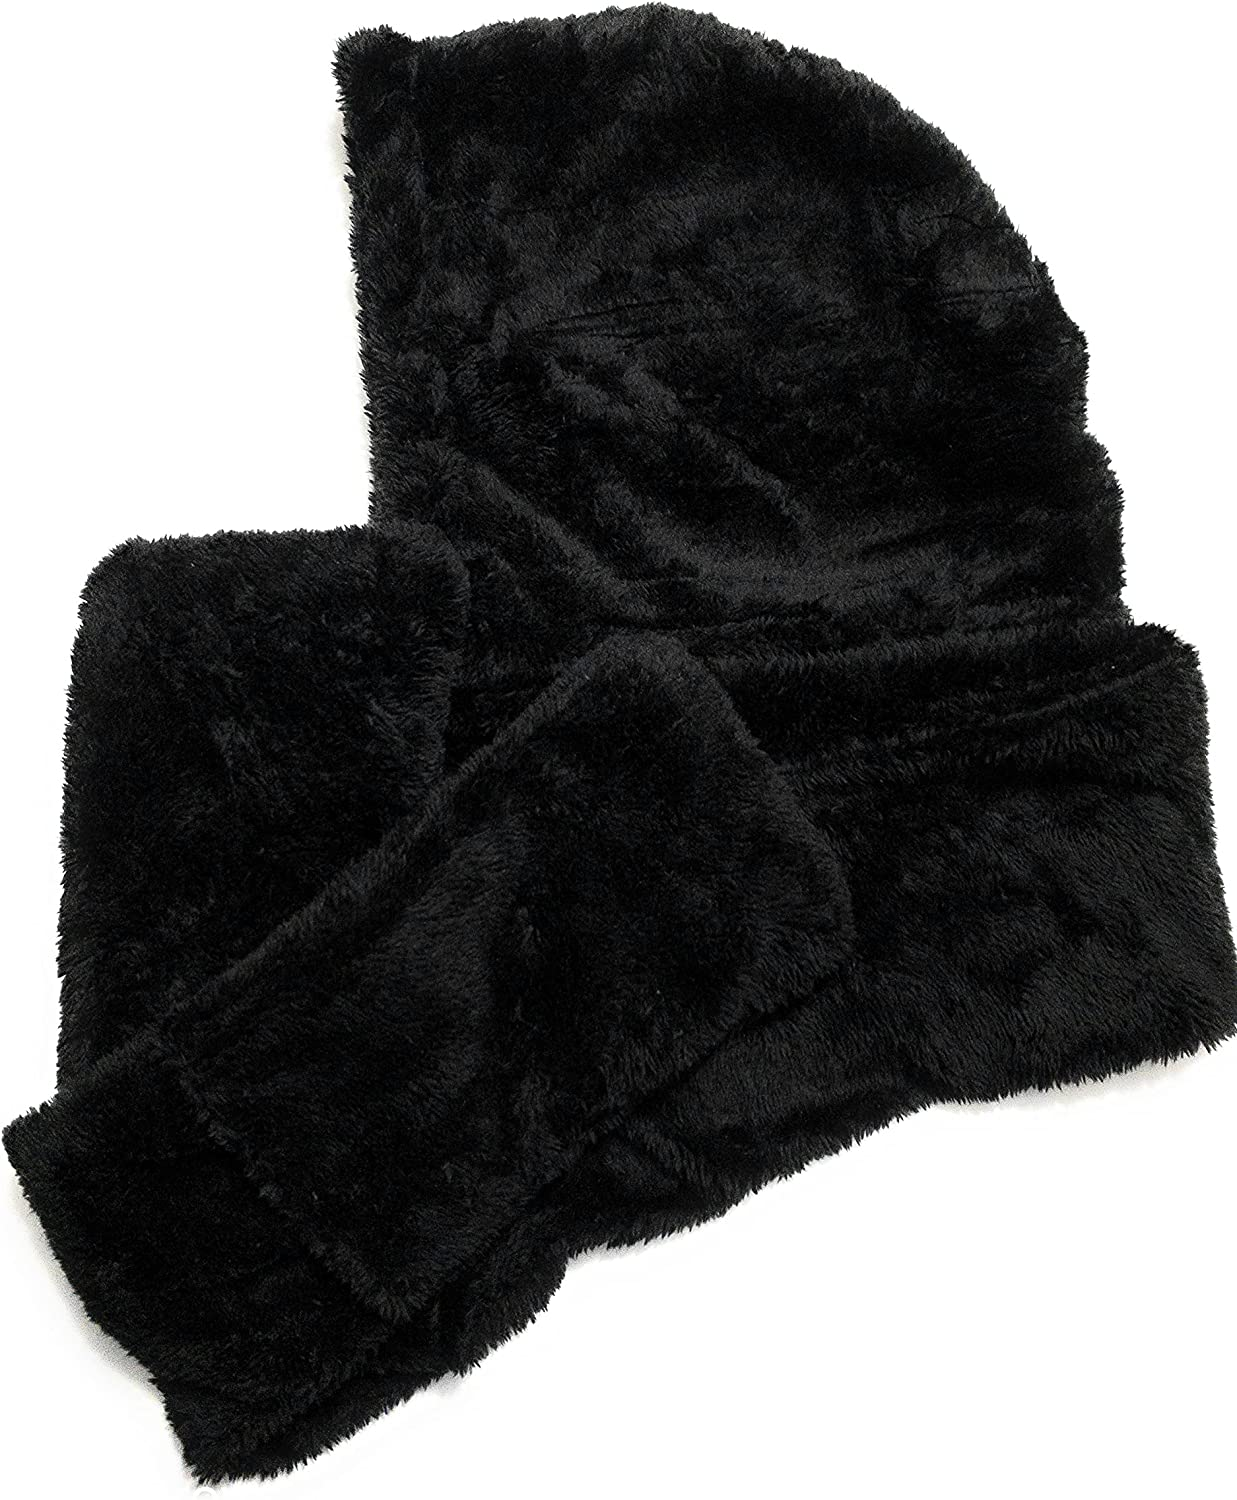 Gadgeteir Winter warm soft thick shawls, durable and attractive fashionable twist scarf with gloves like pockets sets to warm your hands or a place to put your phone or keys, also comes with color - Black, Medium